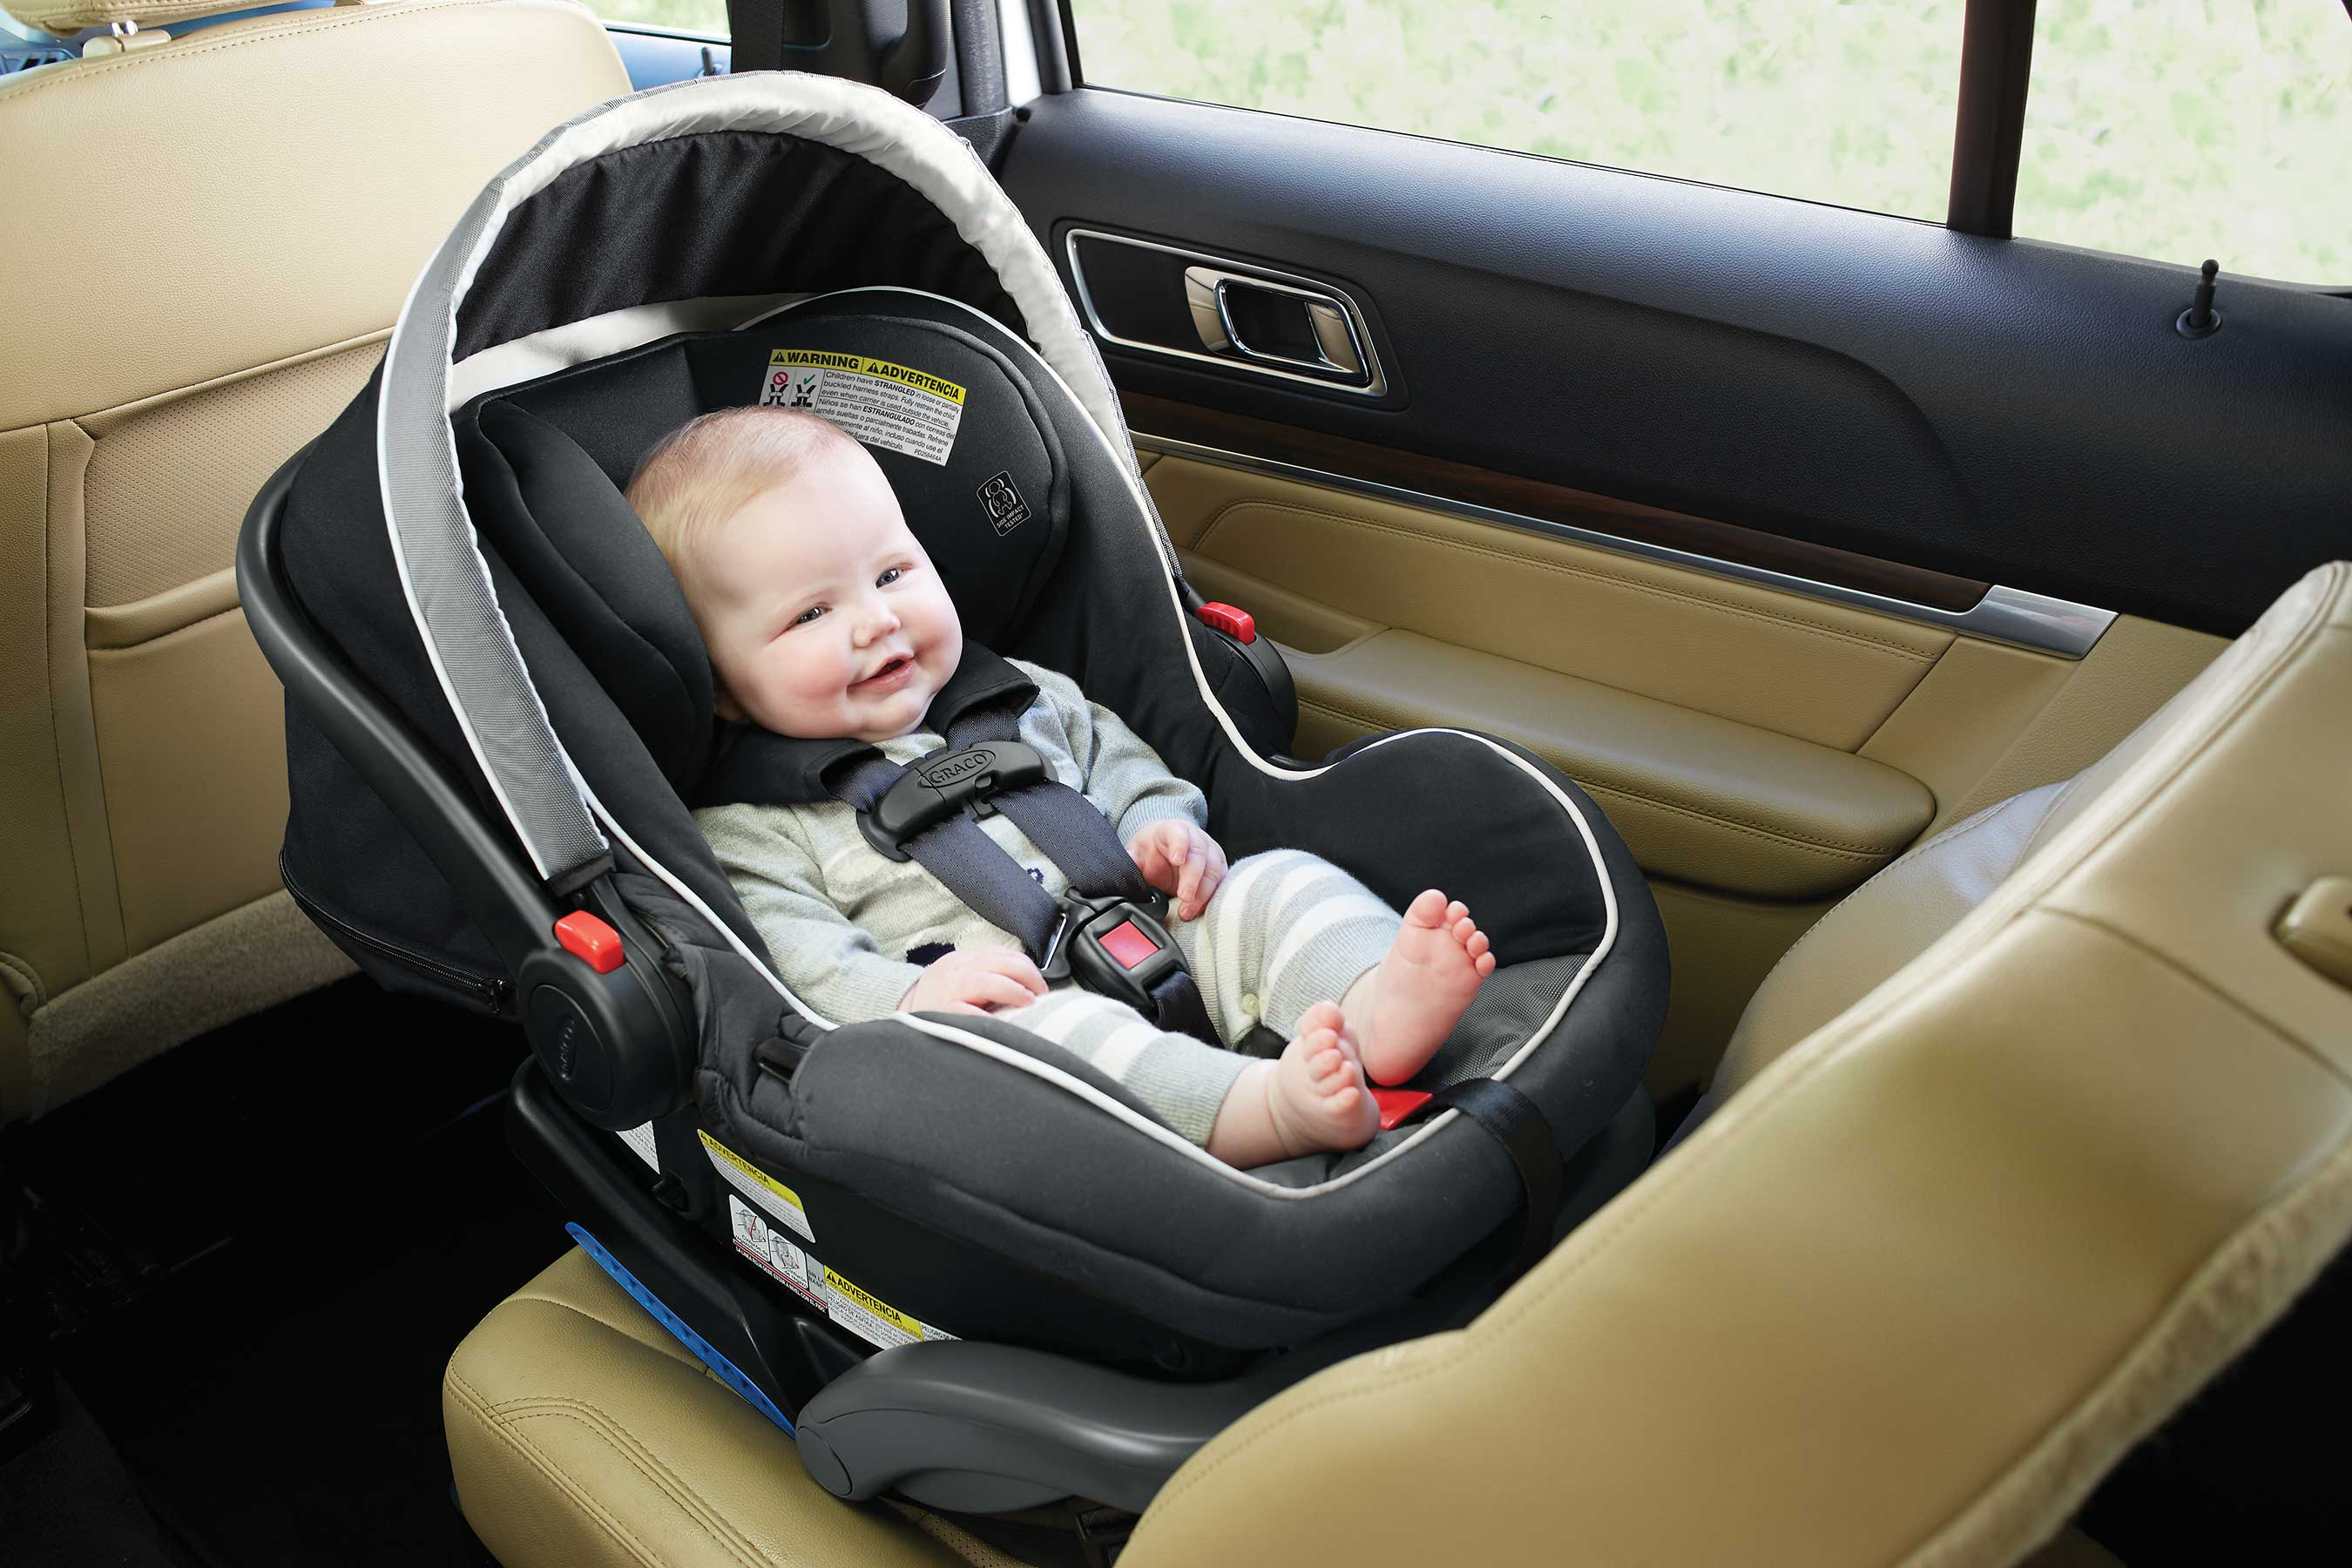 Child Safety Seat Brands Britax Car Seat Expiration Know Car Seats And Their Laws